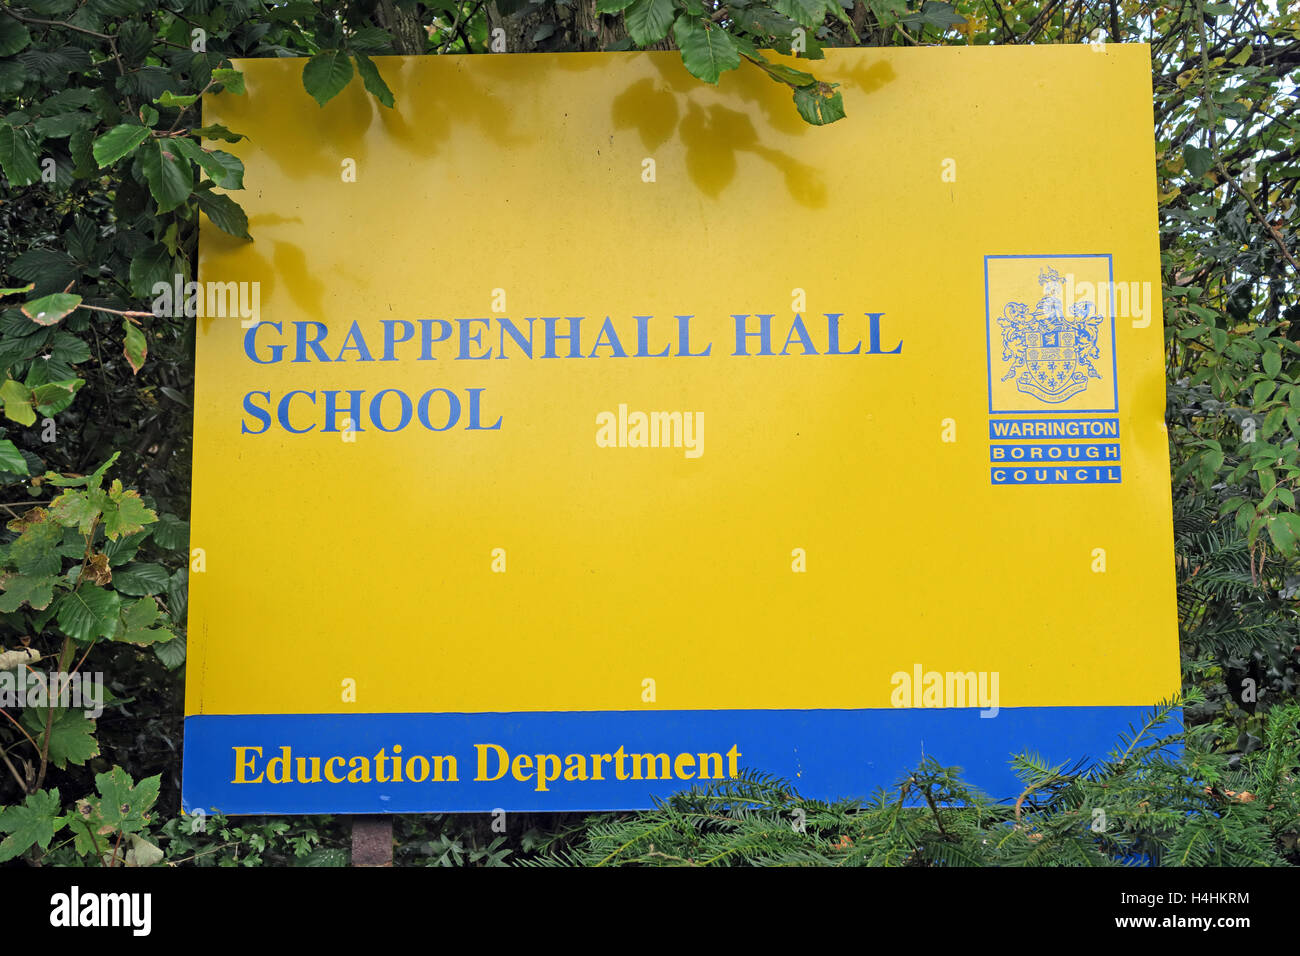 Grappenhall Hall School sign, Warrington, Cheshire, England, UK - Stock Image